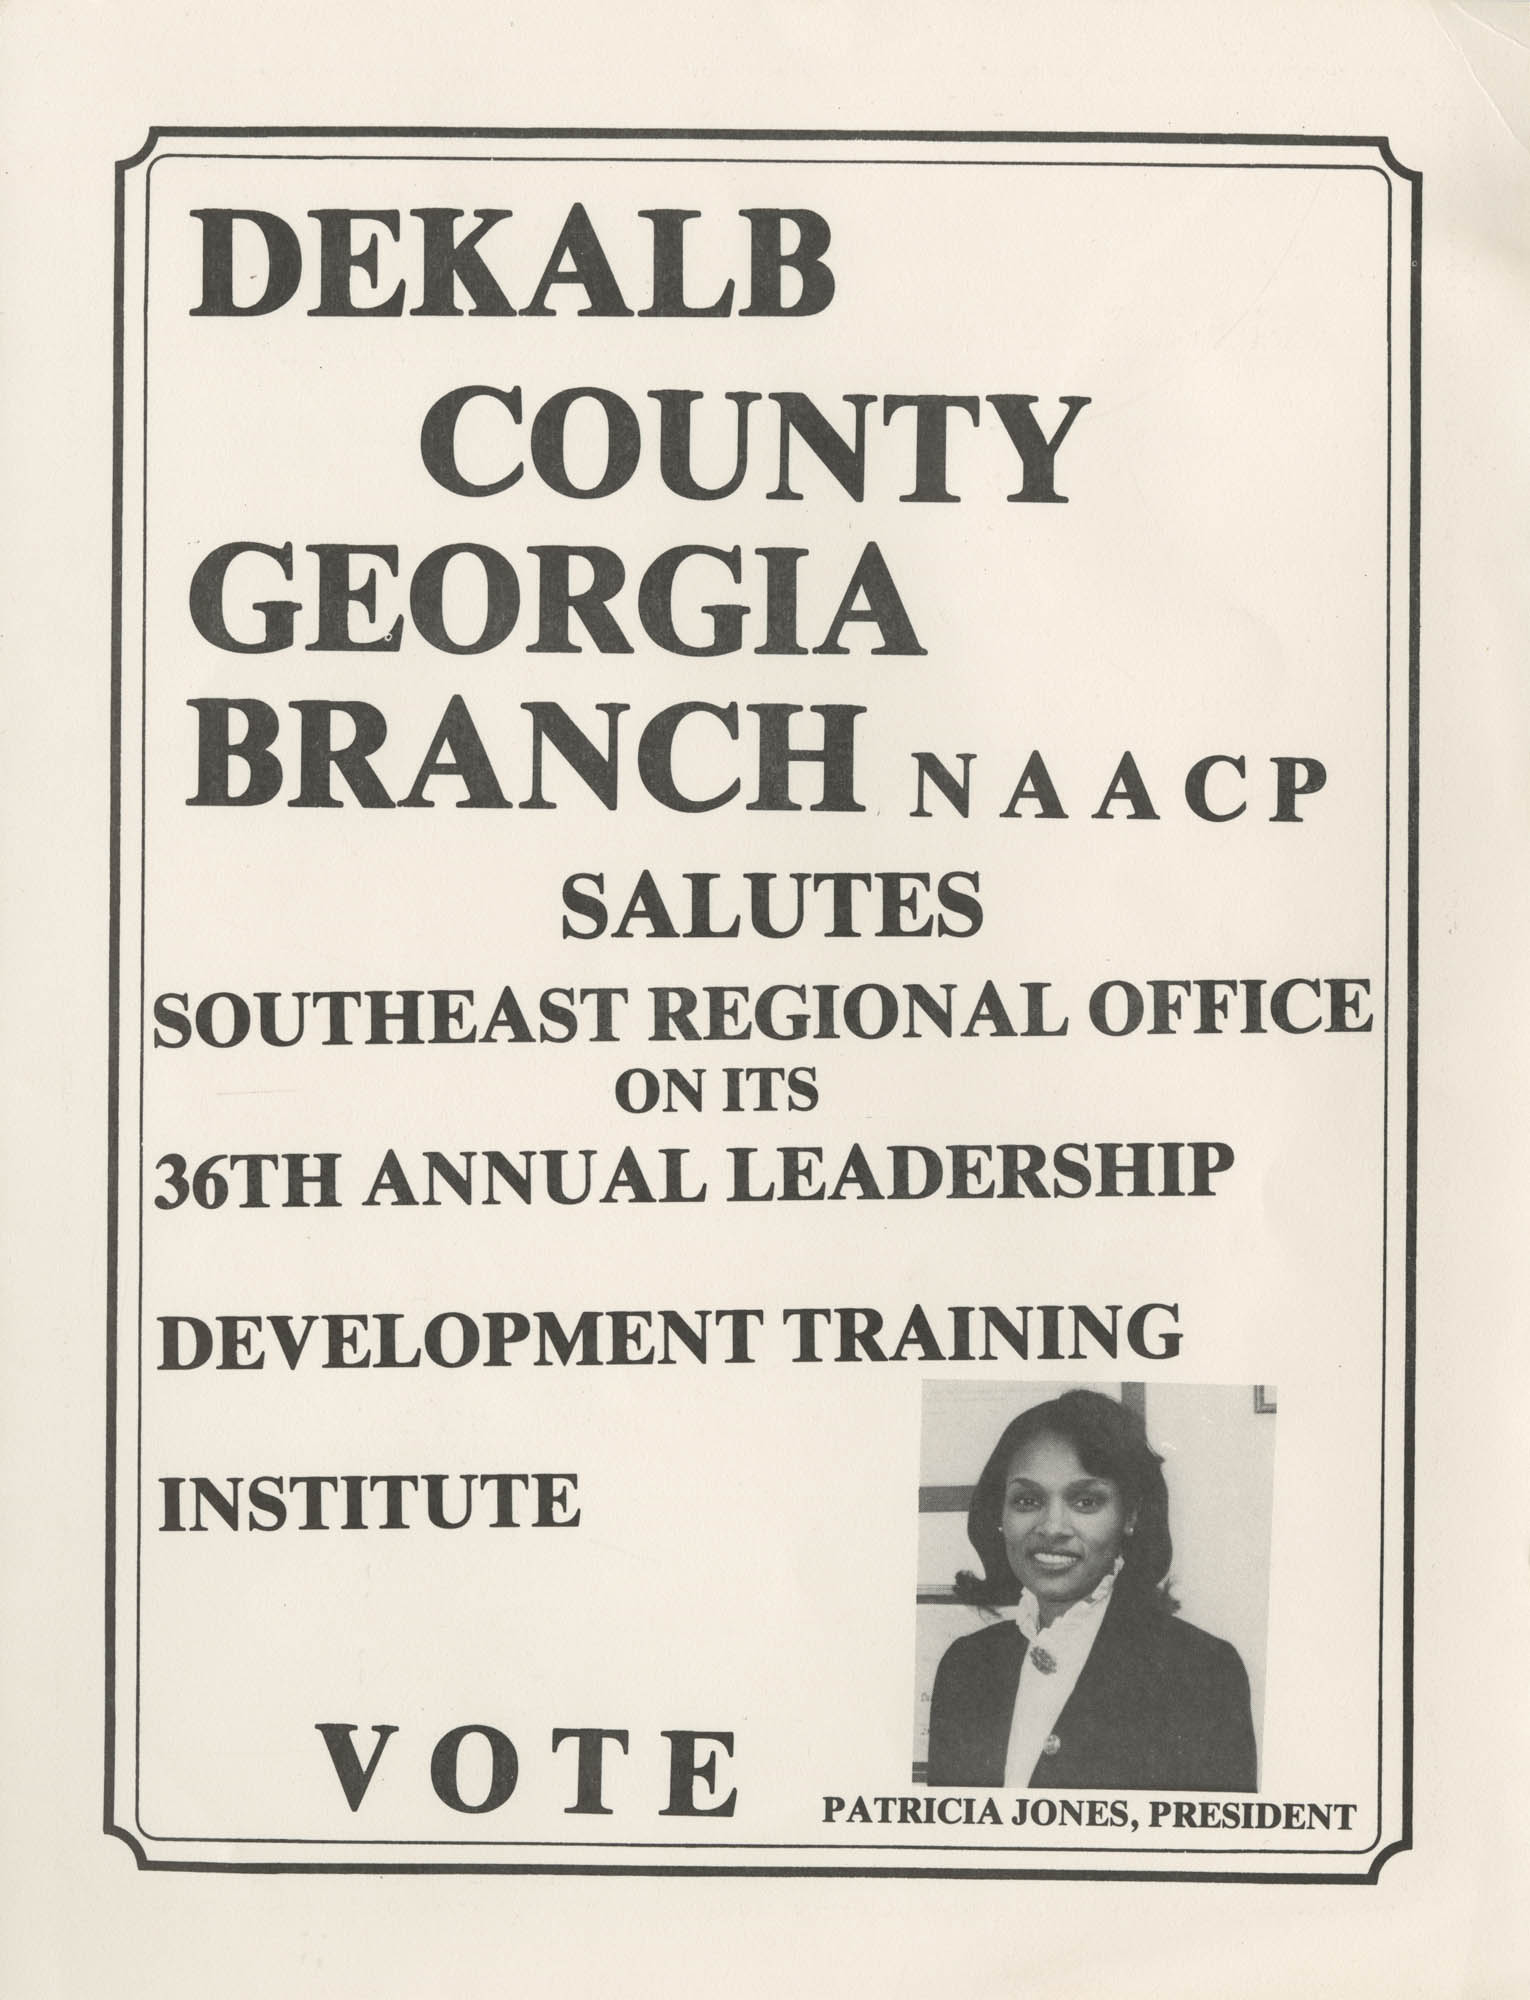 36th Annual Southeast Regional NAACP Leadership Development Training Institute, Back Cover Interior